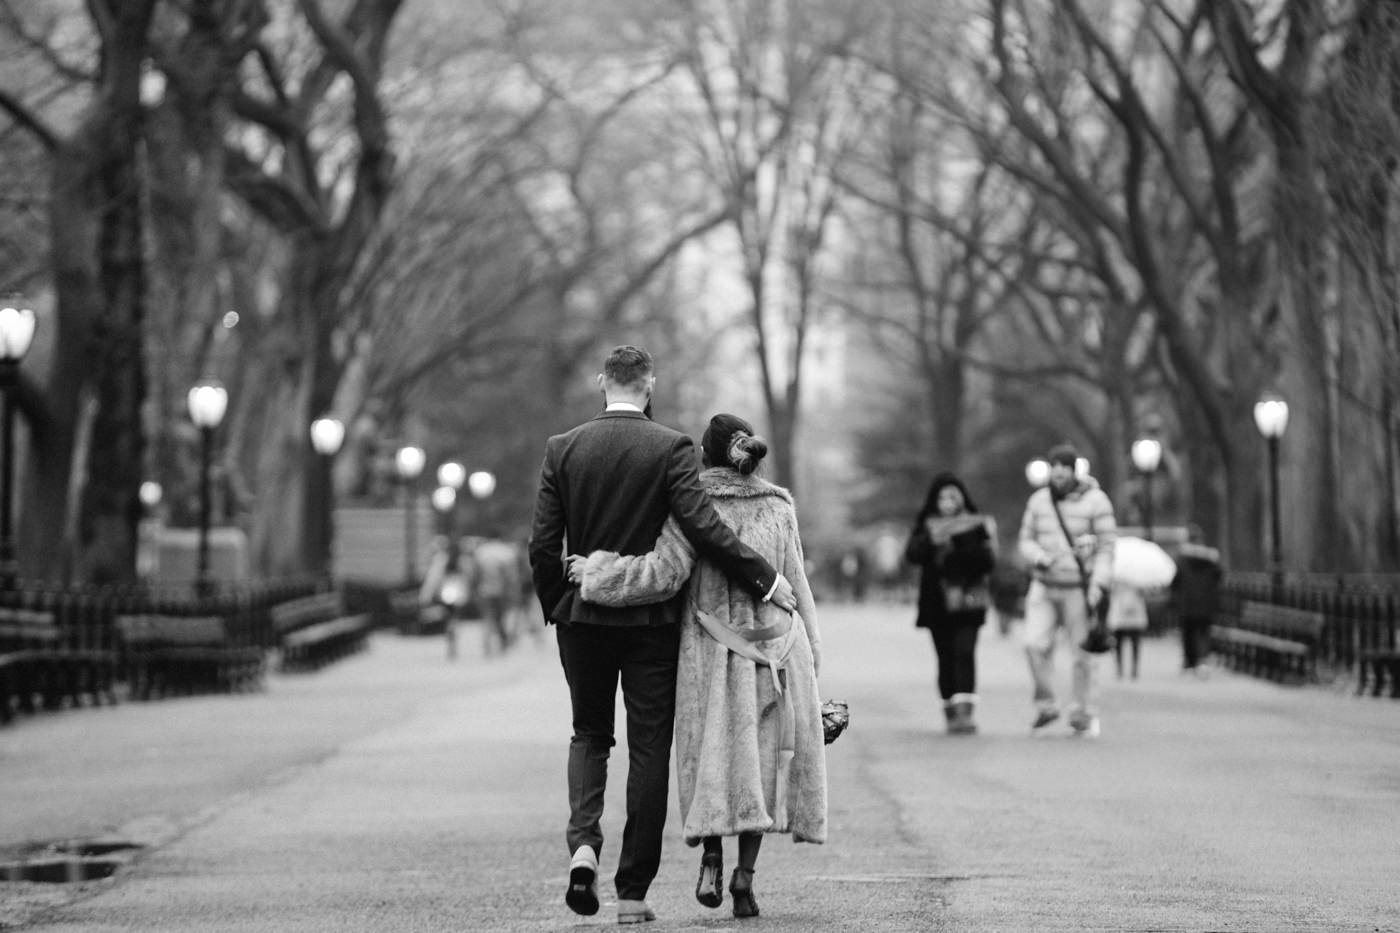 Central-park-wedding-by-Tanya-Isaeva-113.jpg